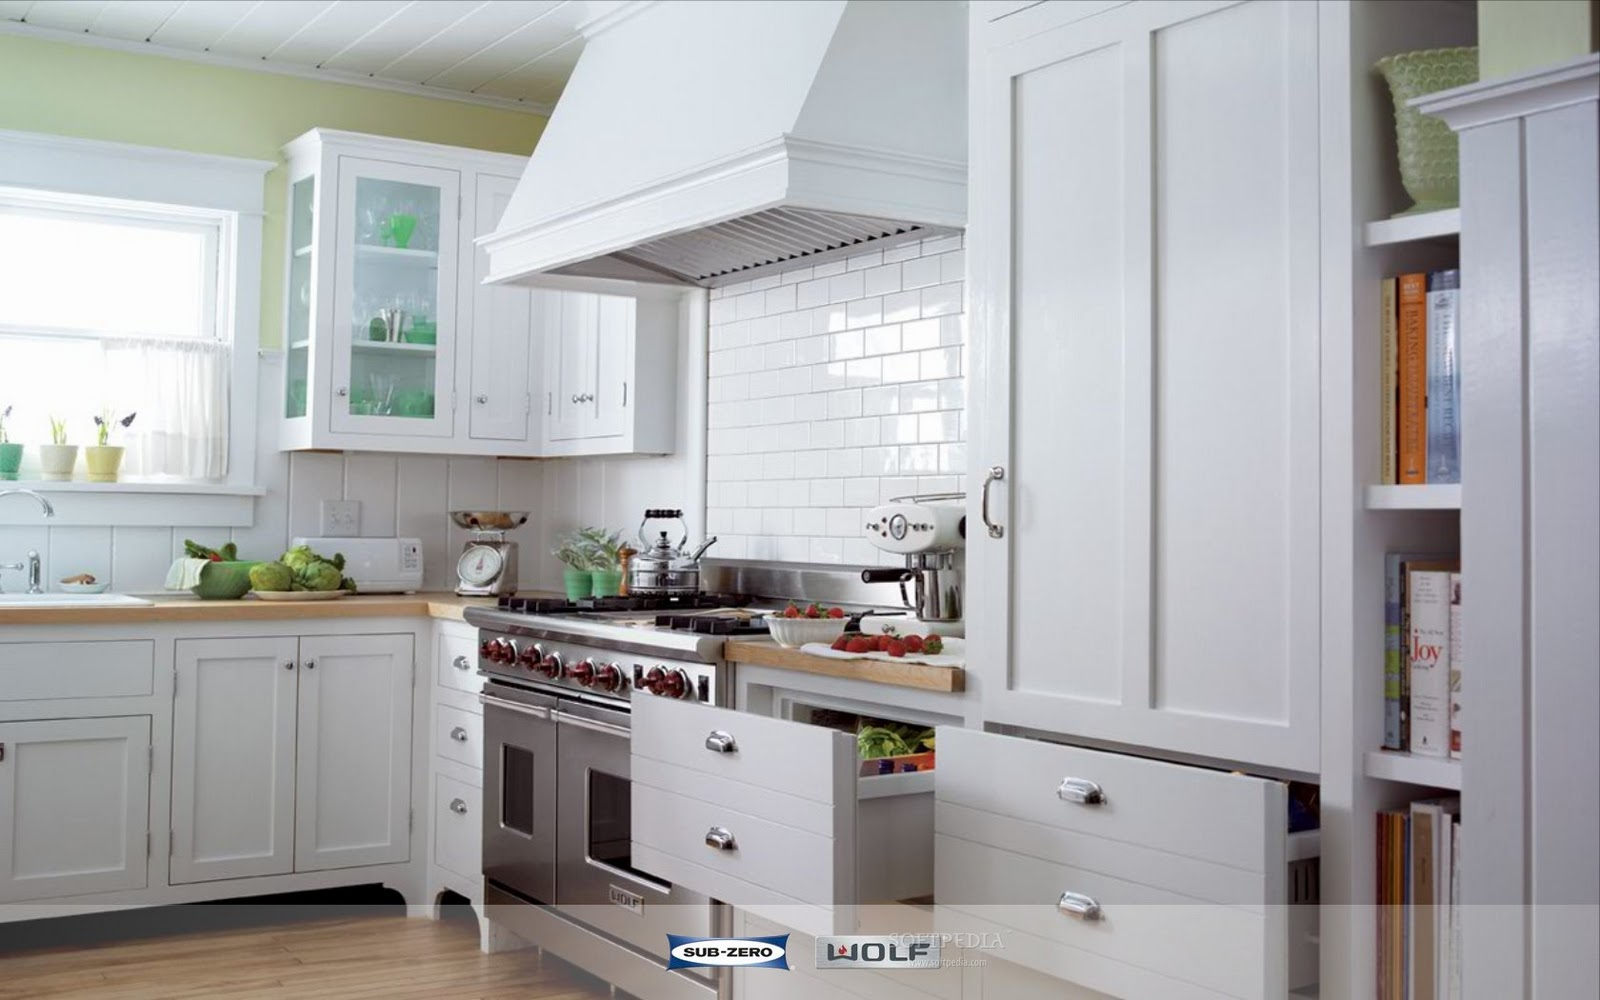 Best Kitchen Appliances Colorful Rugs Most Beautiful And Modern Kitchens Designs Wallpaper Photos